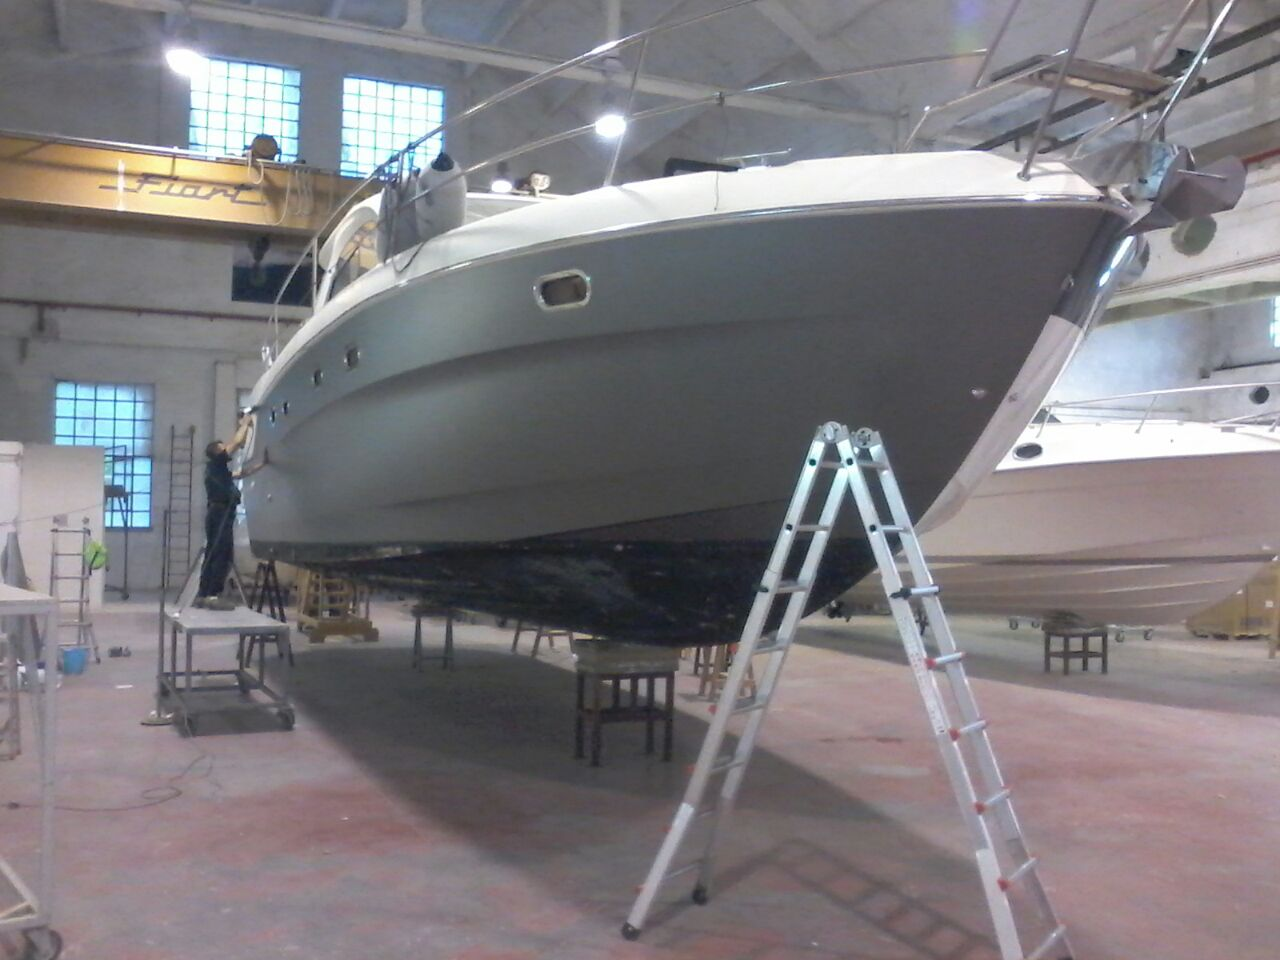 Fiart 45 boat wrapping vista 1